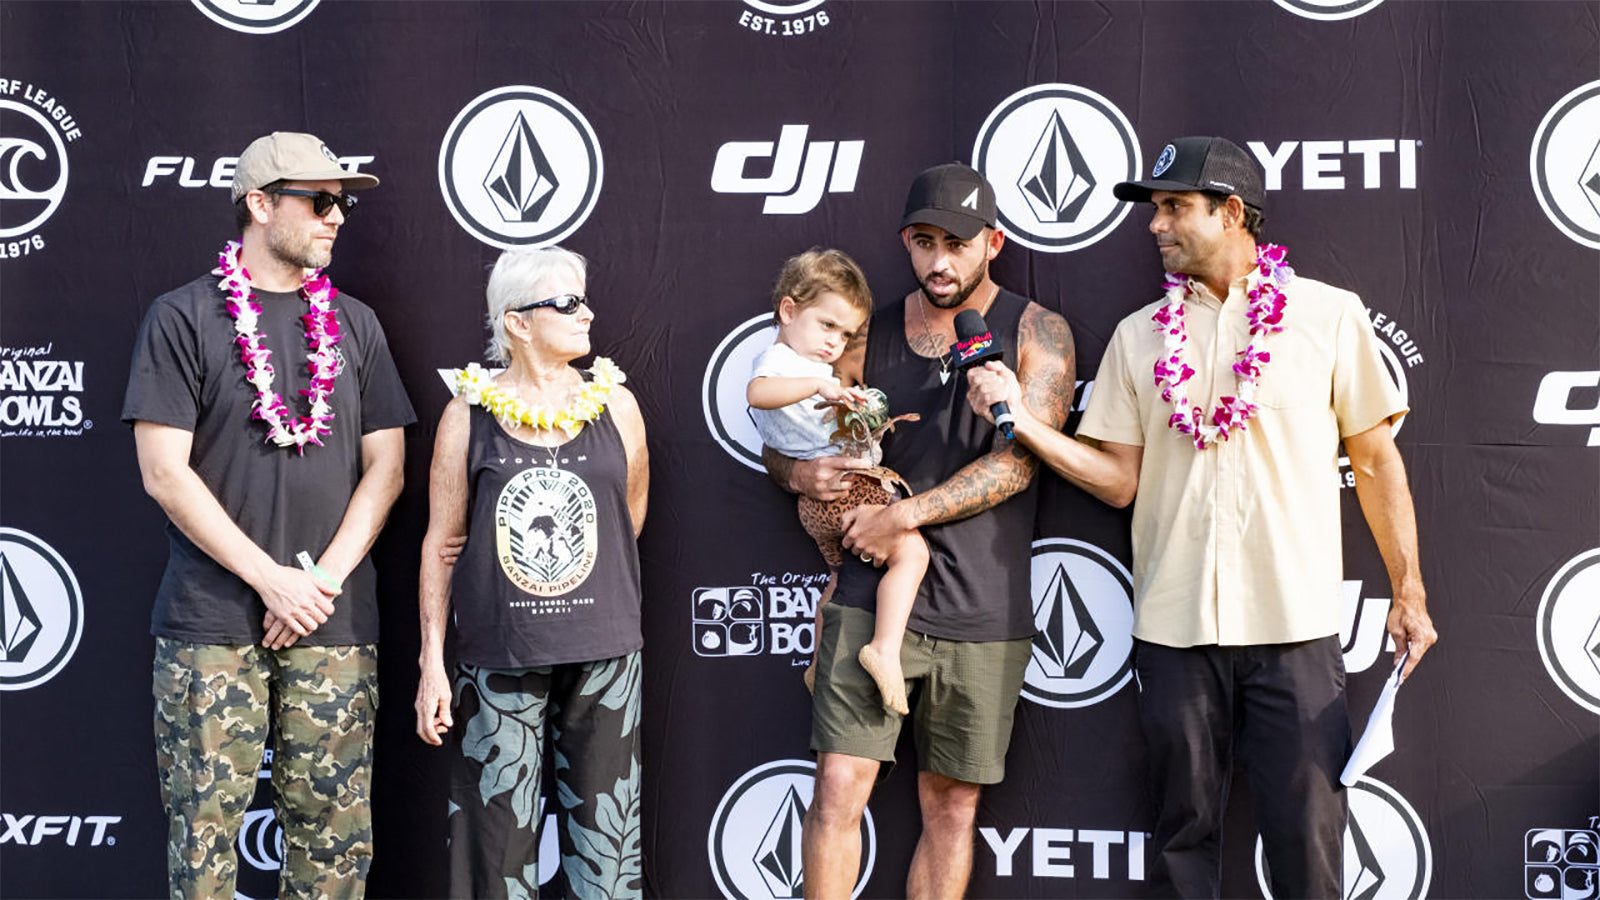 PIPELINE, UNITED STATES- FEBRUARY 01: Prize giving during day 4 the 2020 Volcom Pipe Pro at Pipeline, Haleiwa on February 01, 2020 in Hawaii, USA. (Photo by Keoki Saguibo/WSL via Getty Images)